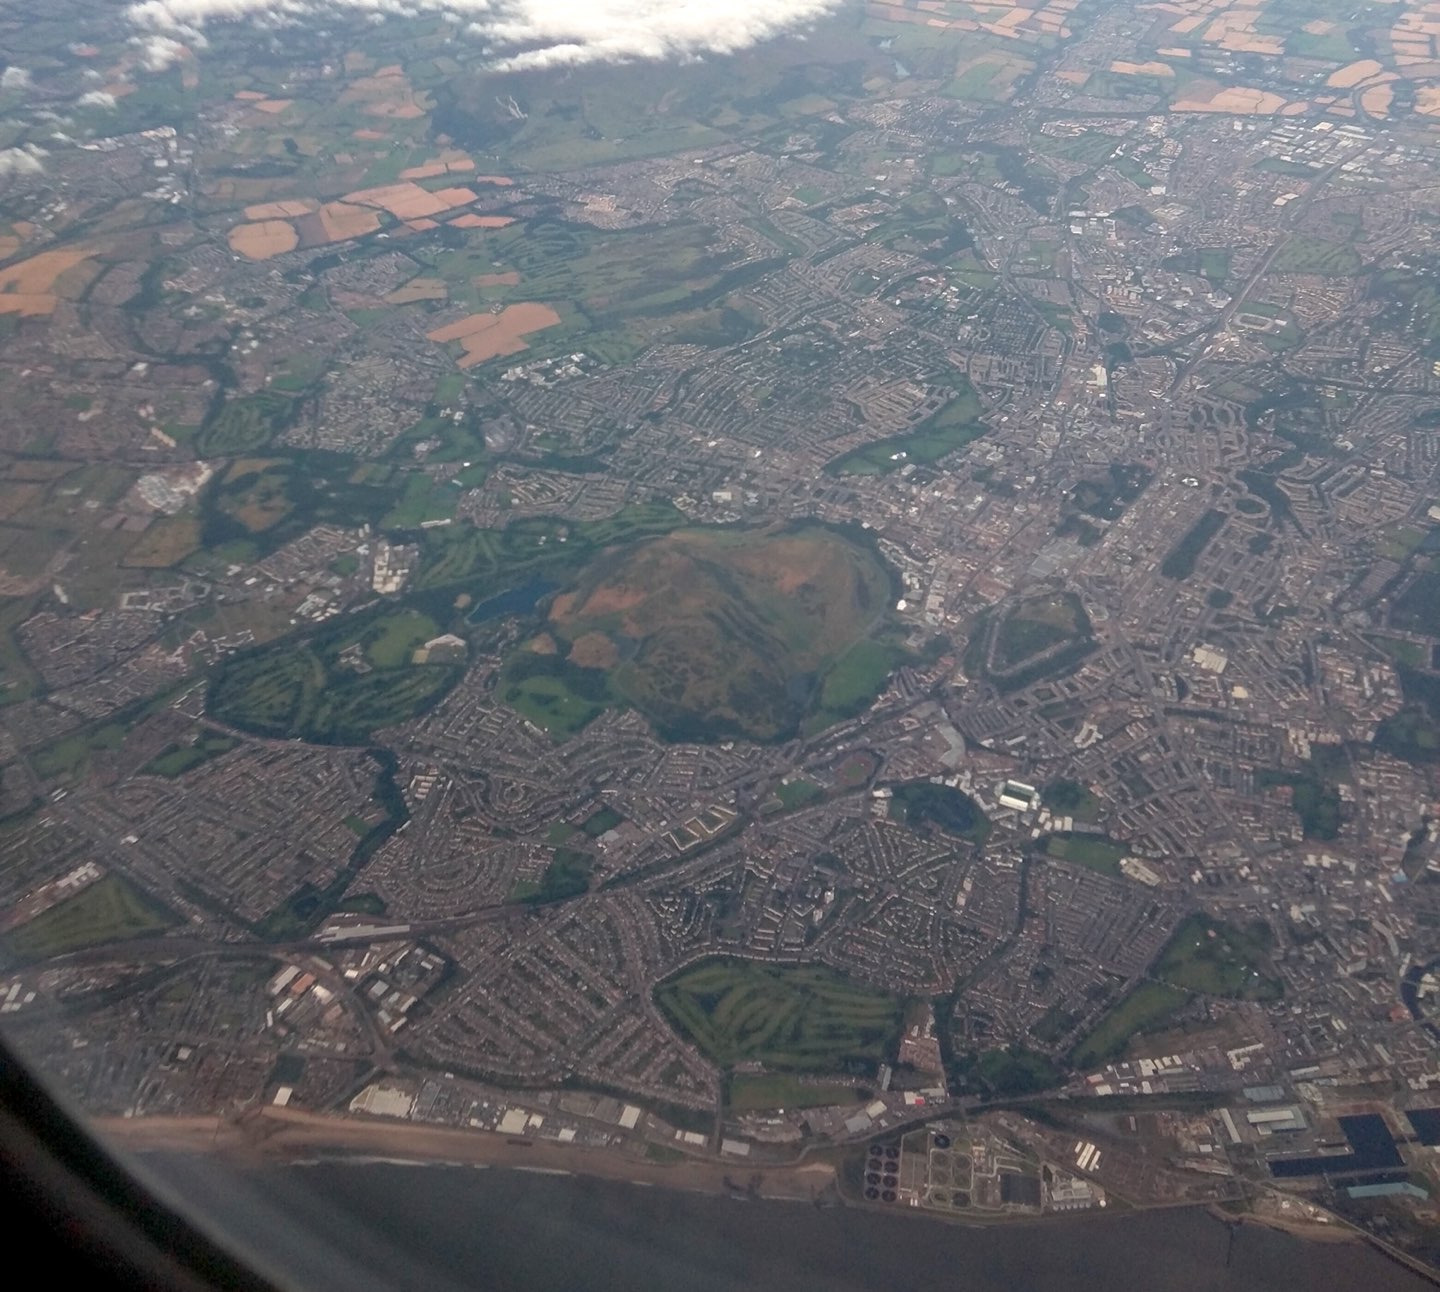 Photo of Edinburgh from above, taken from an airplane window.